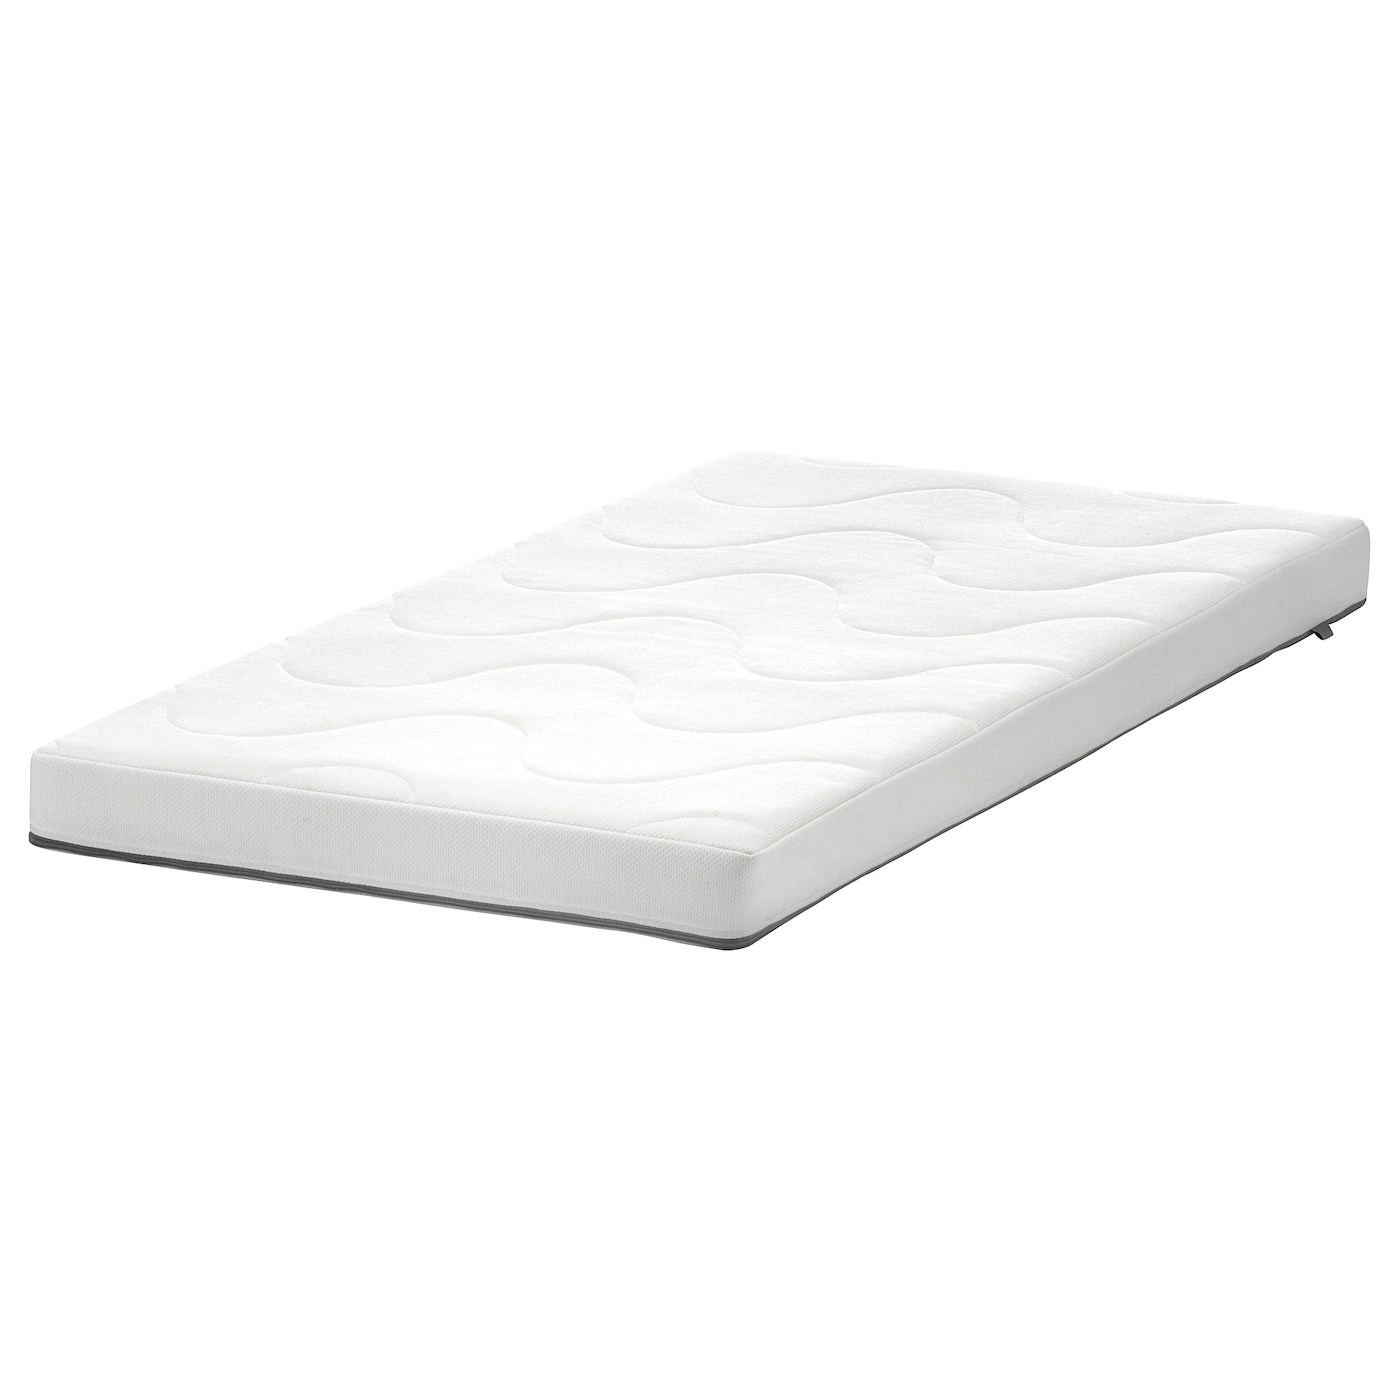 Mattress Cot Krummelur Foam Mattress For Cot